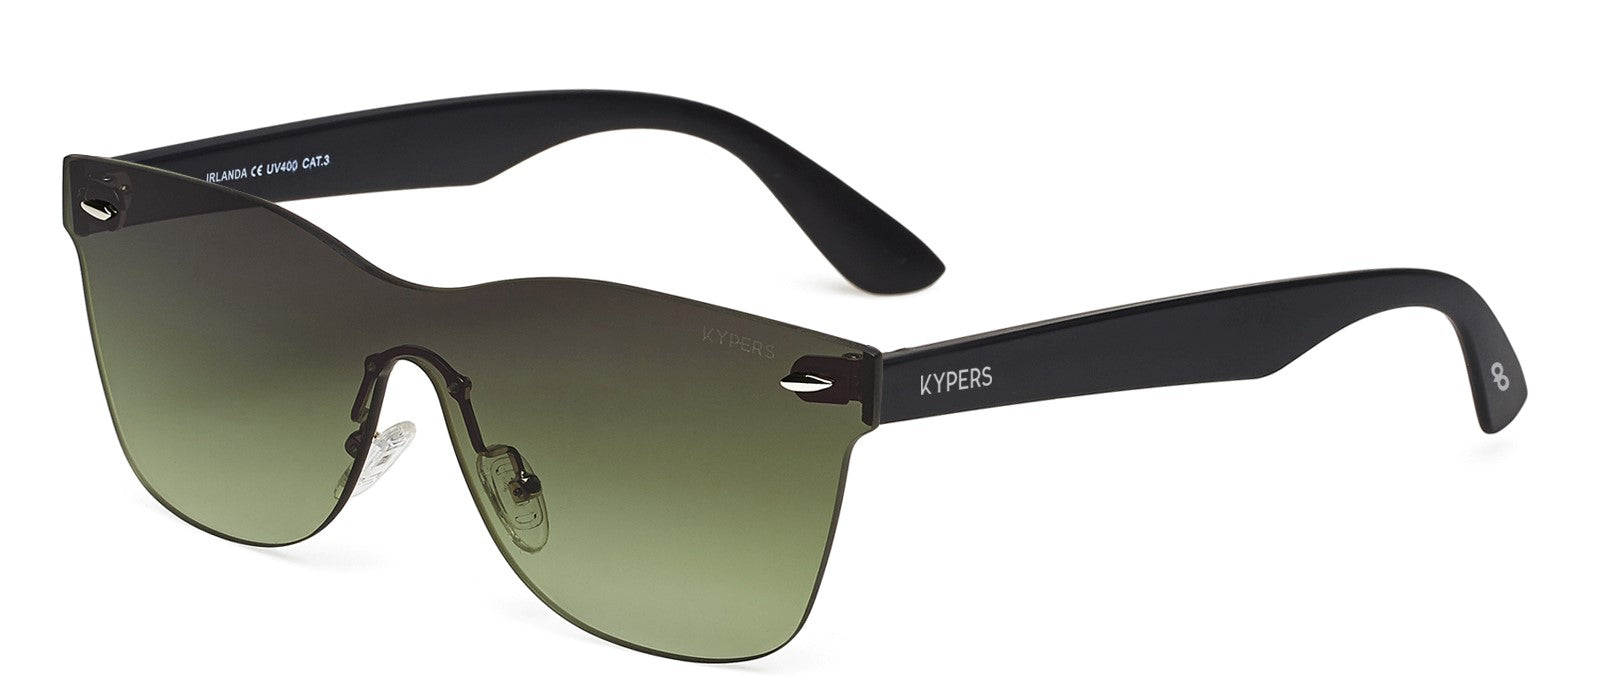 KYPERS sunglasses model IRLANDA IR008 with black frame and red mirror lens